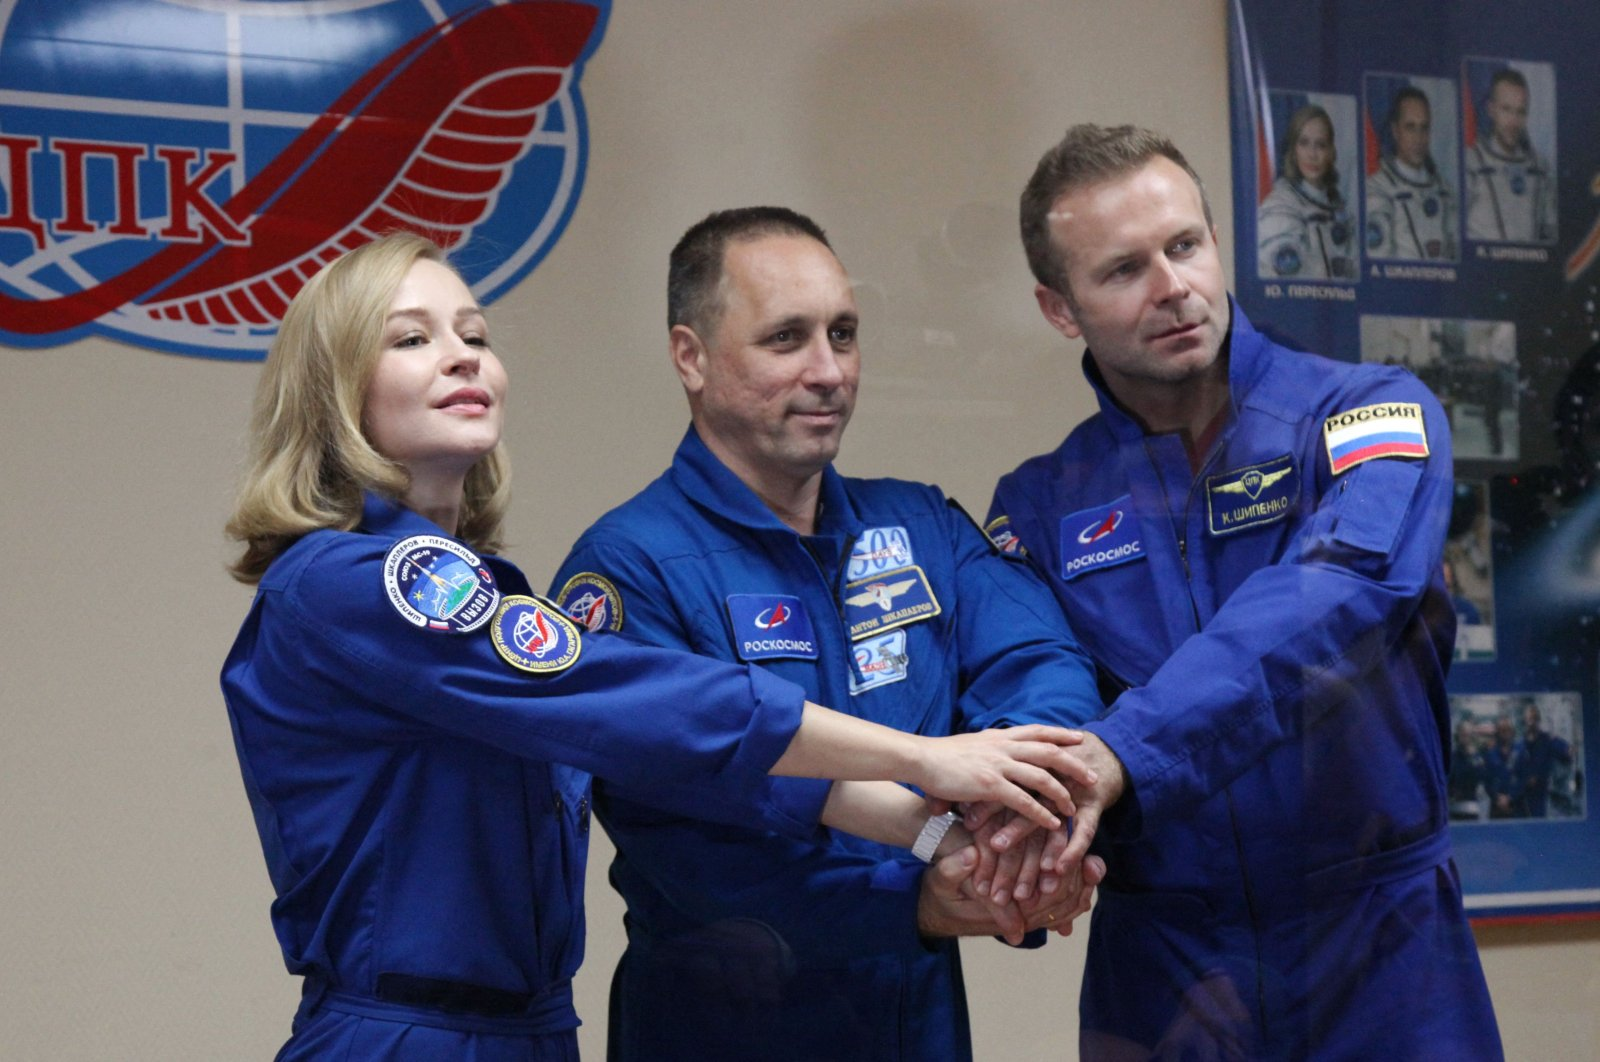 Crew members, cosmonaut Anton Shkaplerov (C), actress Yulia Peresild (L) and director Klim Shipenko, shake hands during a news conference ahead of the expedition to the International Space Station (ISS) at the Baikonur Cosmodrome, Kazakhstan, Oct. 4, 2021. (Roscosmos via AFP)